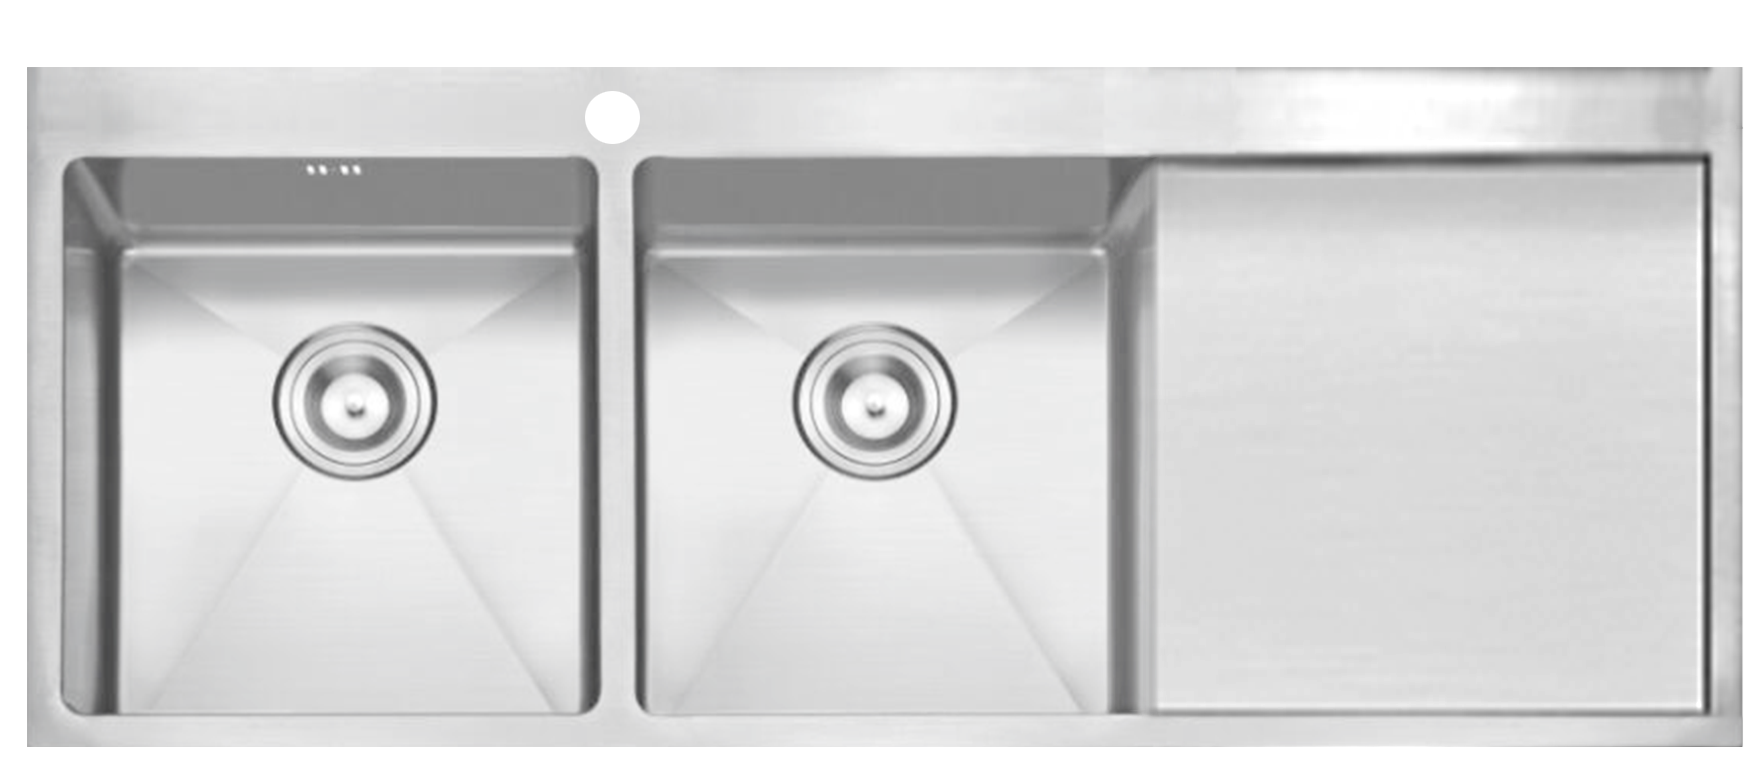 shaped pin stainless sinks kitchen undermount sink bowl steel d